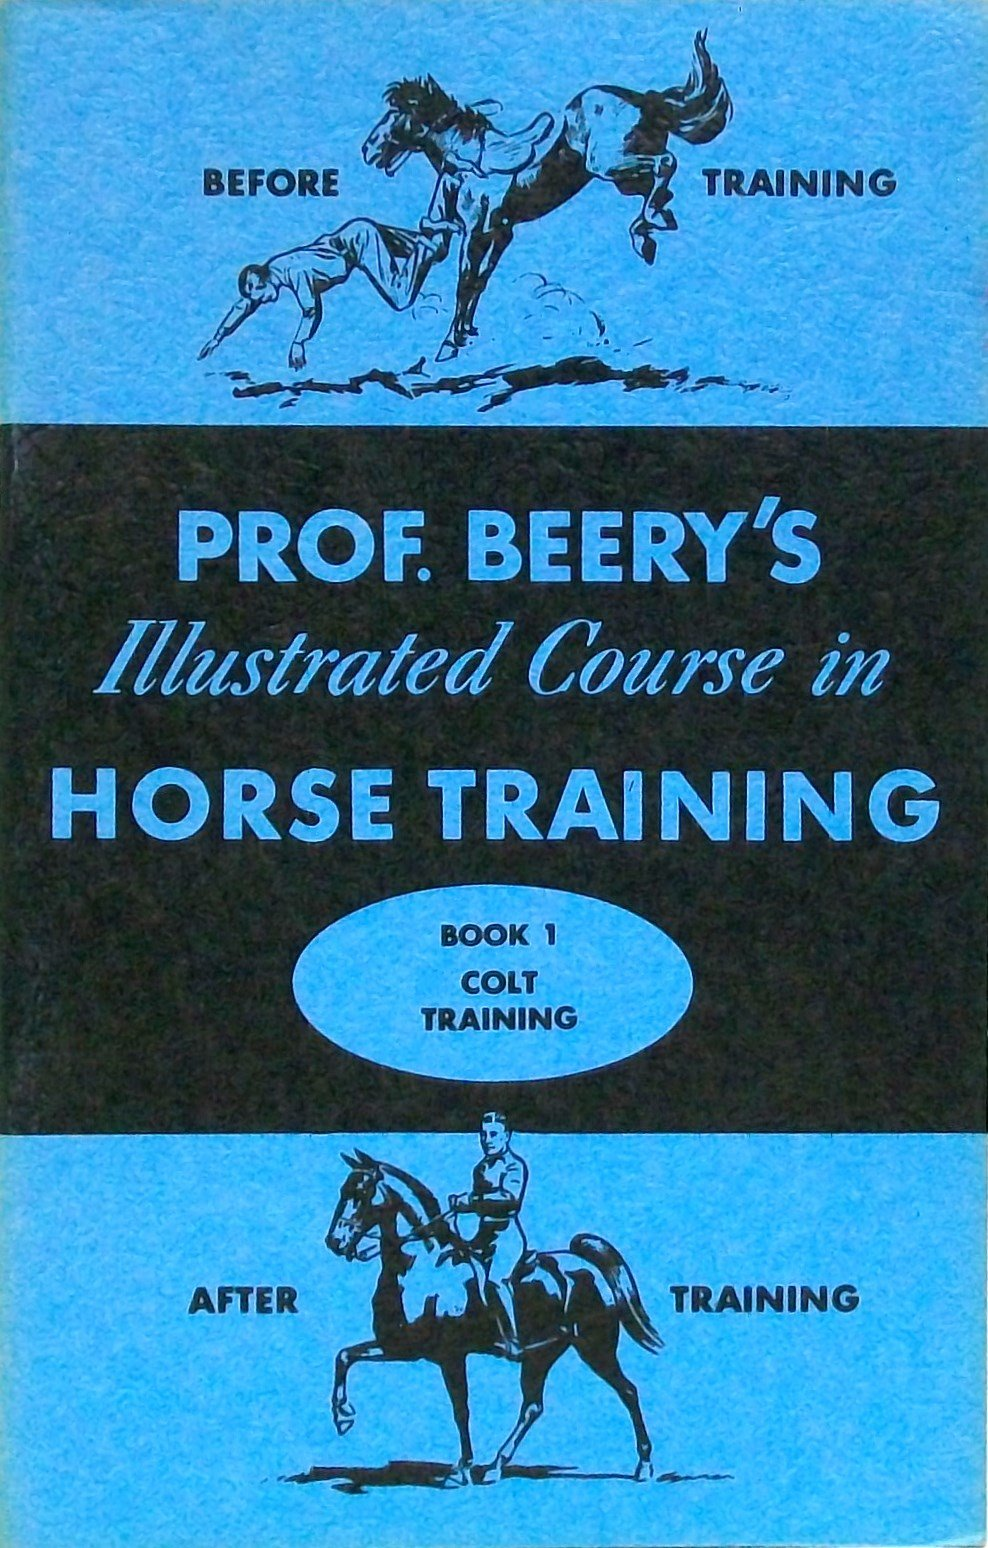 Prof. Beery's Illustrated Course in Horse Training Book 1 Colt Training